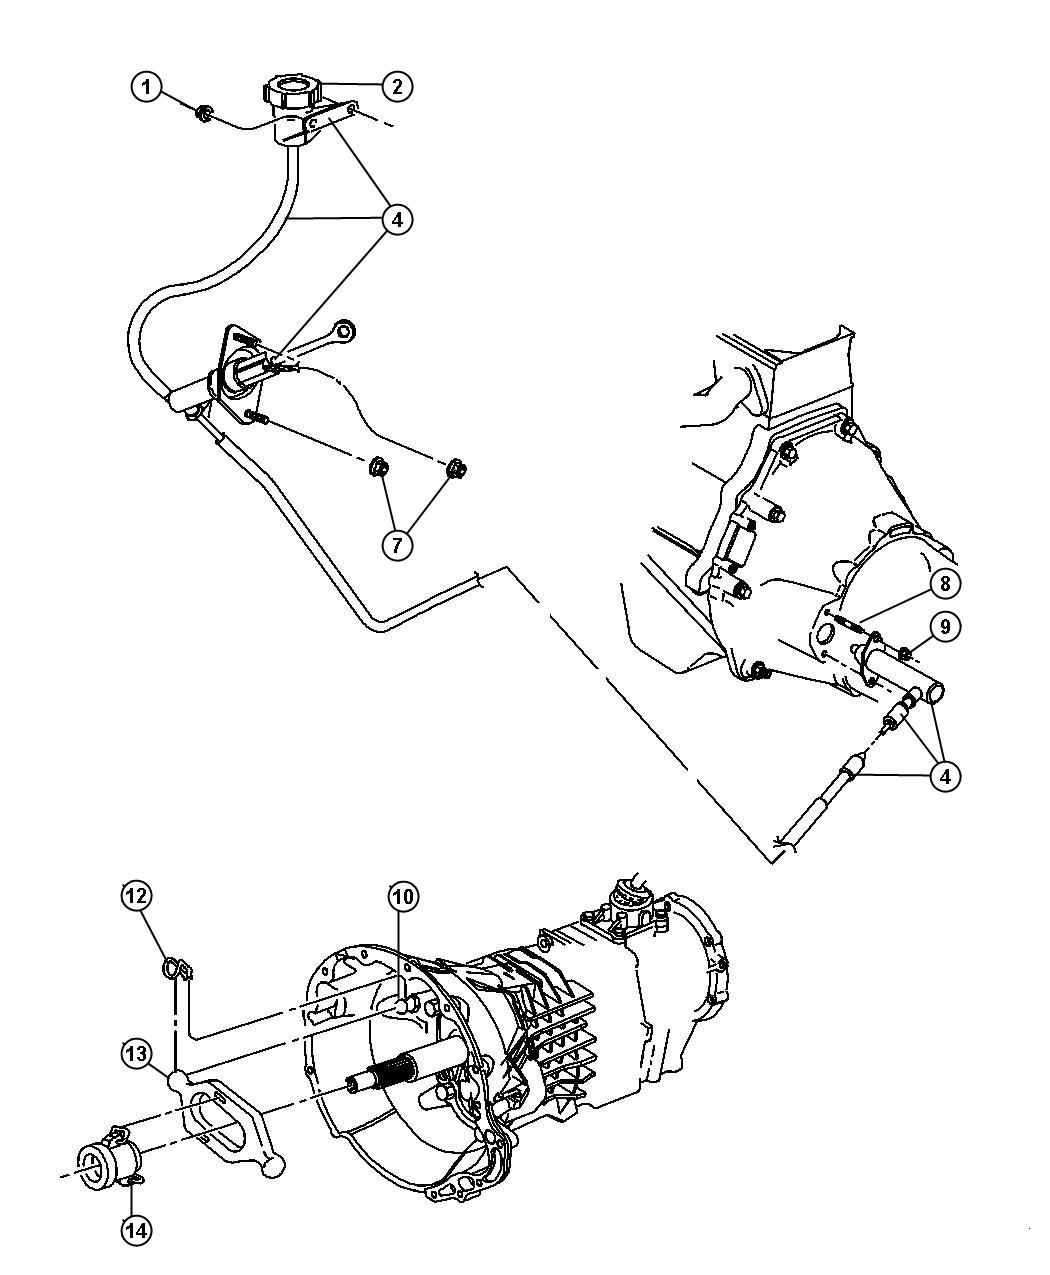 Master Slave Wiring Diagram Get Free Image About Cylinder Schematic: Ford Ranger Clutch Slave Cylinder Diagram At Chusao.net